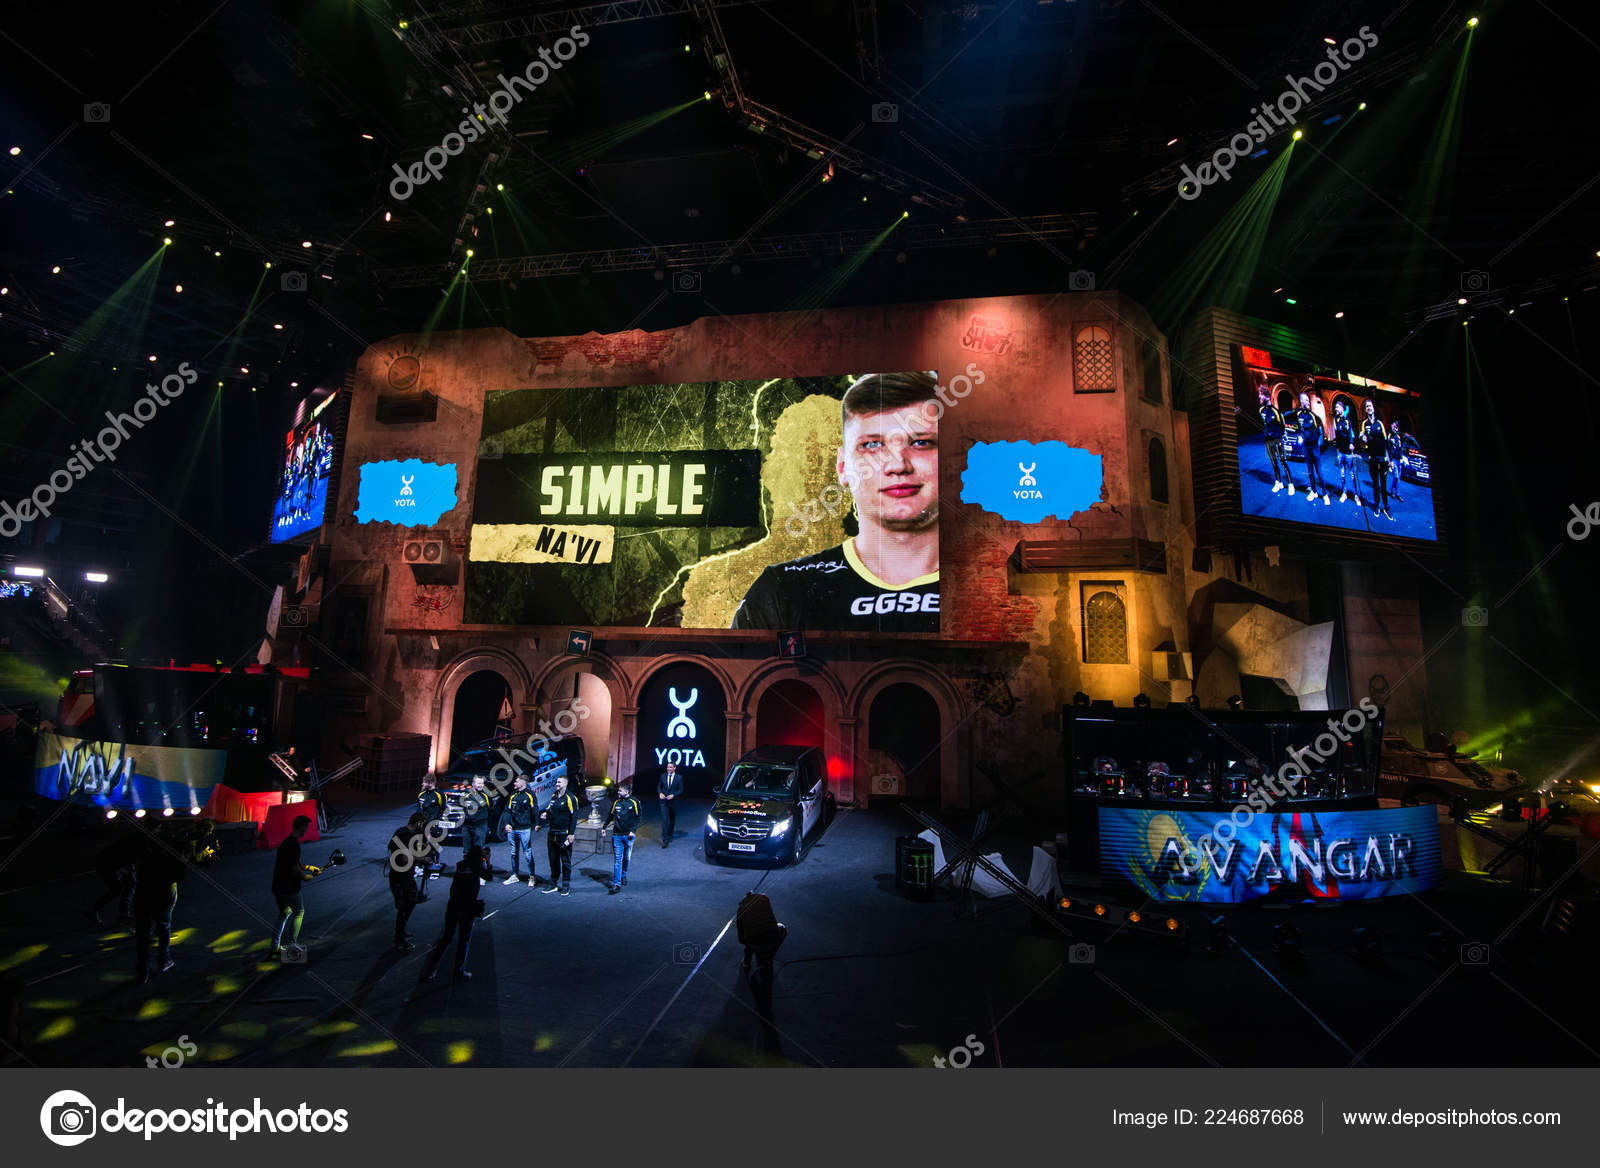 MOSCOW, RUSSIA - OCTOBER 27 2018: EPICENTER Counter Strike: Global